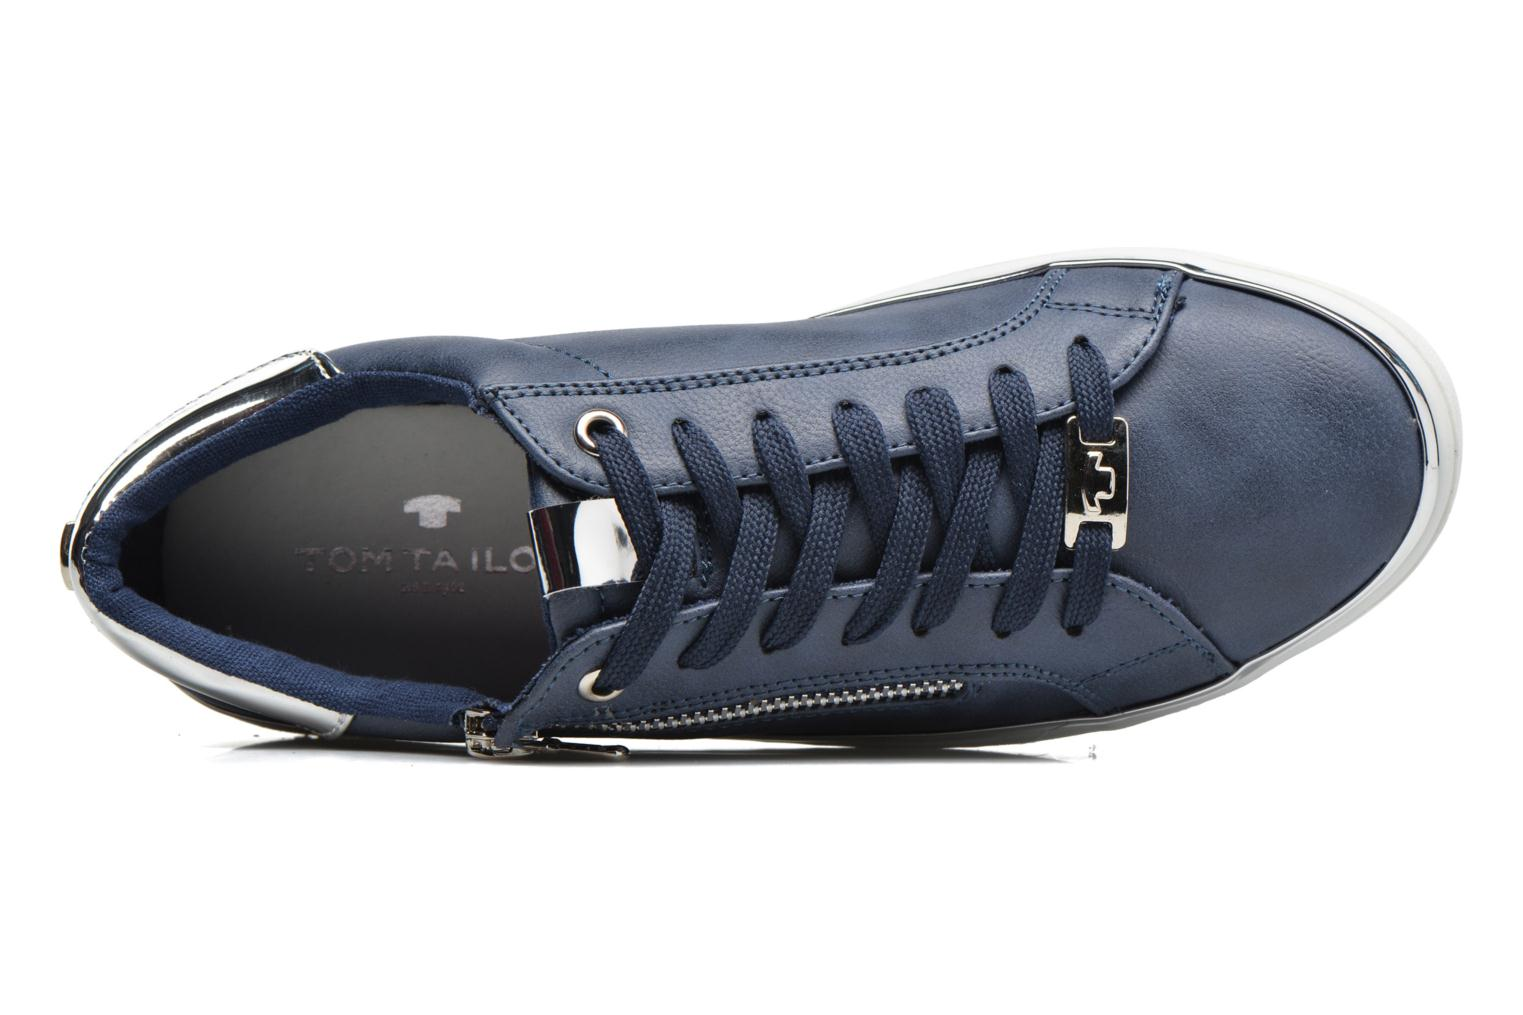 Coolioo Navy-Silver